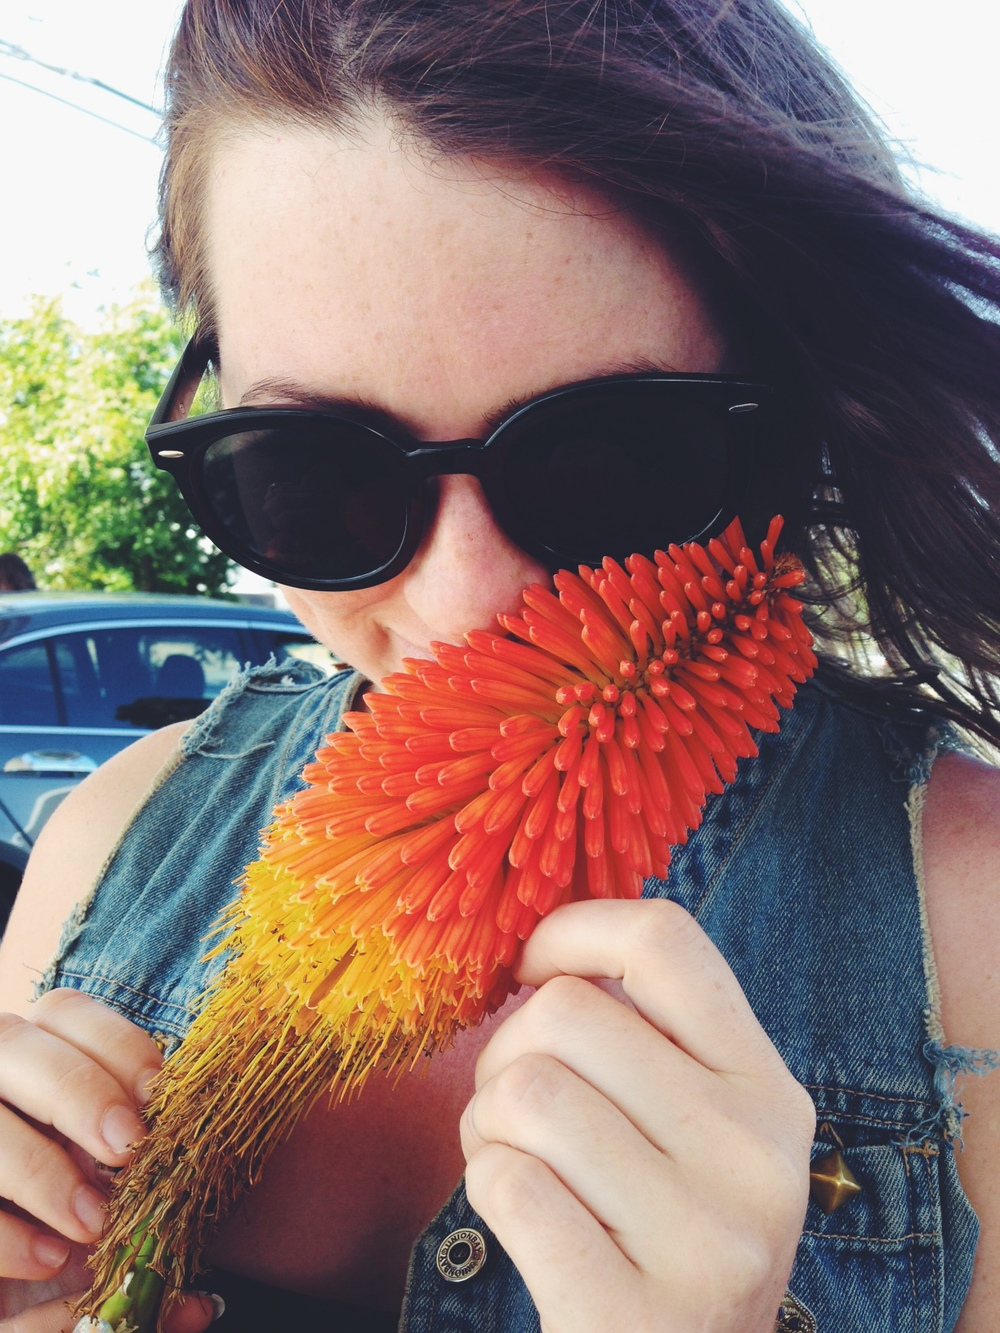 Some beautiful flower Anna picked off the road.